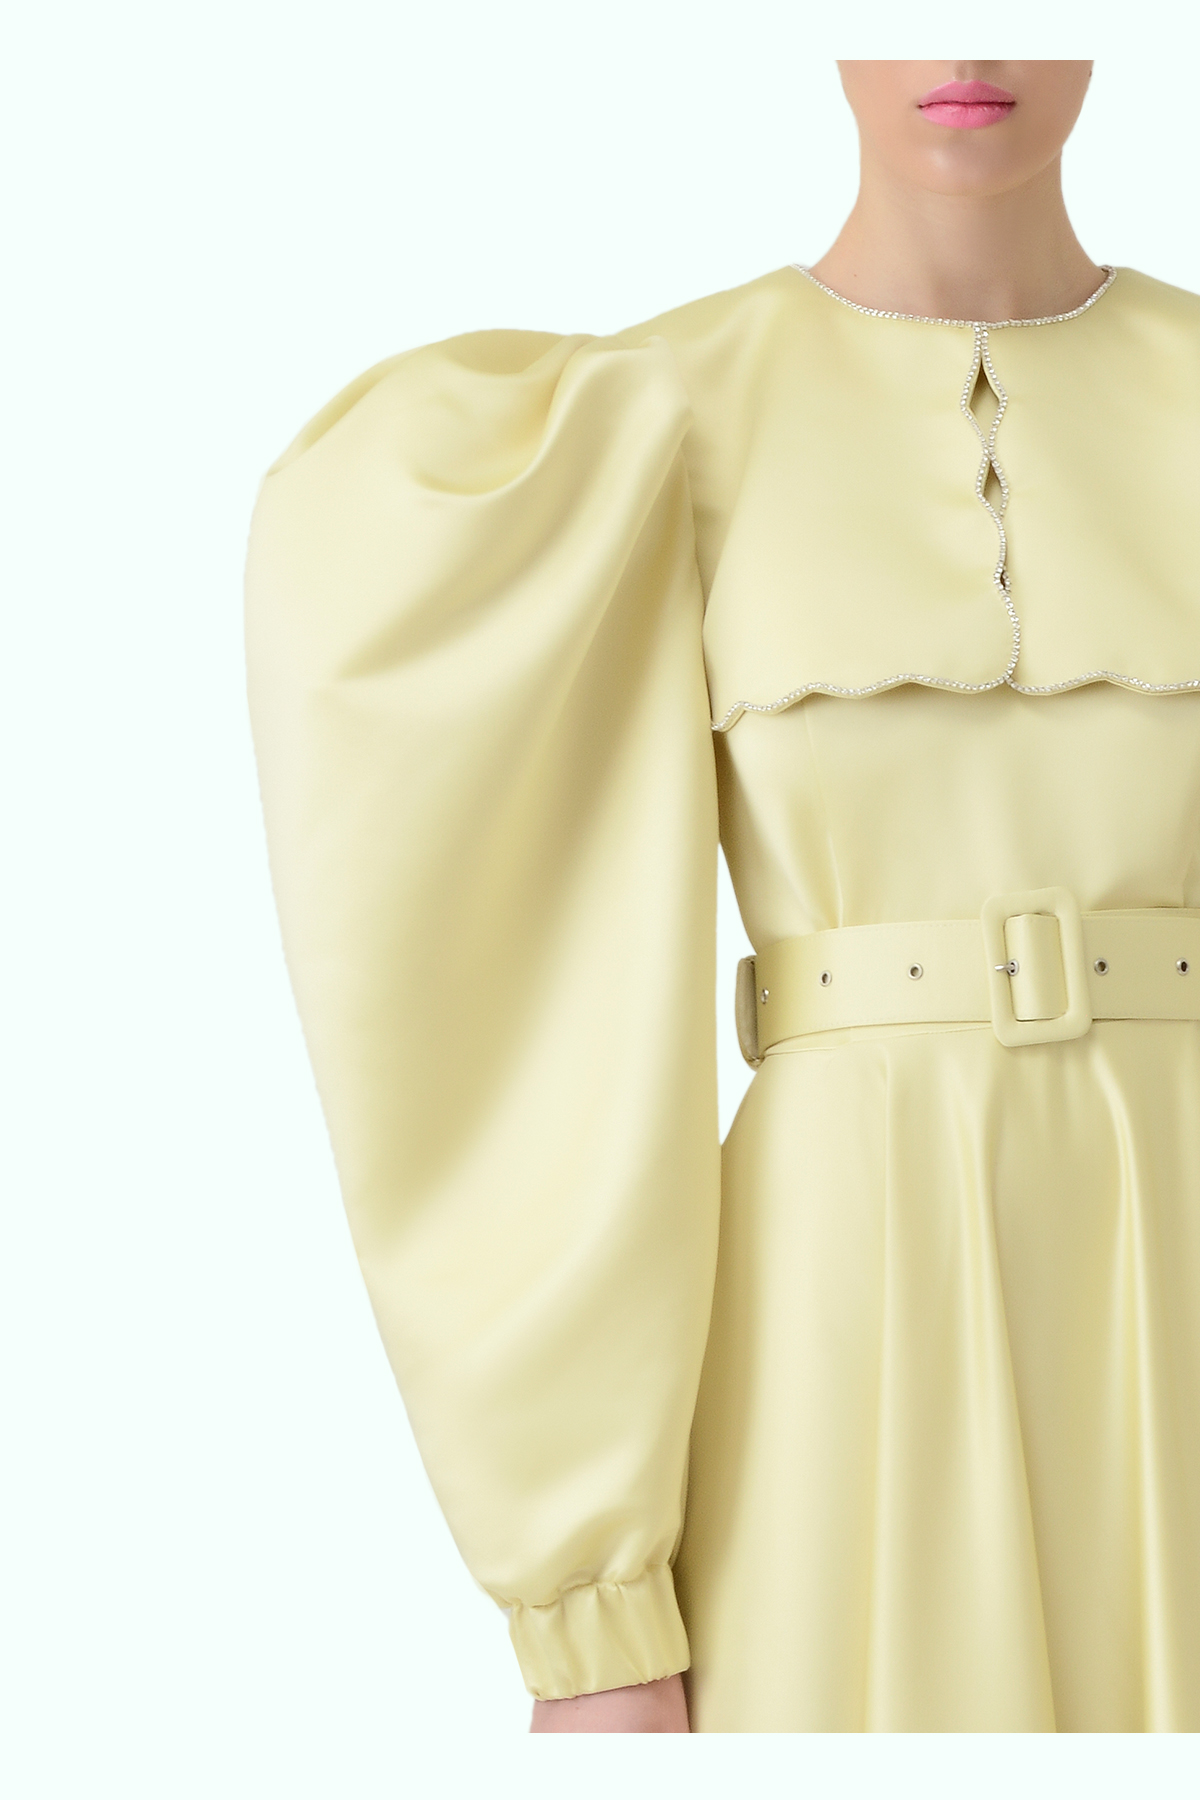 Puff sleeve yellow dress with puritan collar and embroidered crystals 2